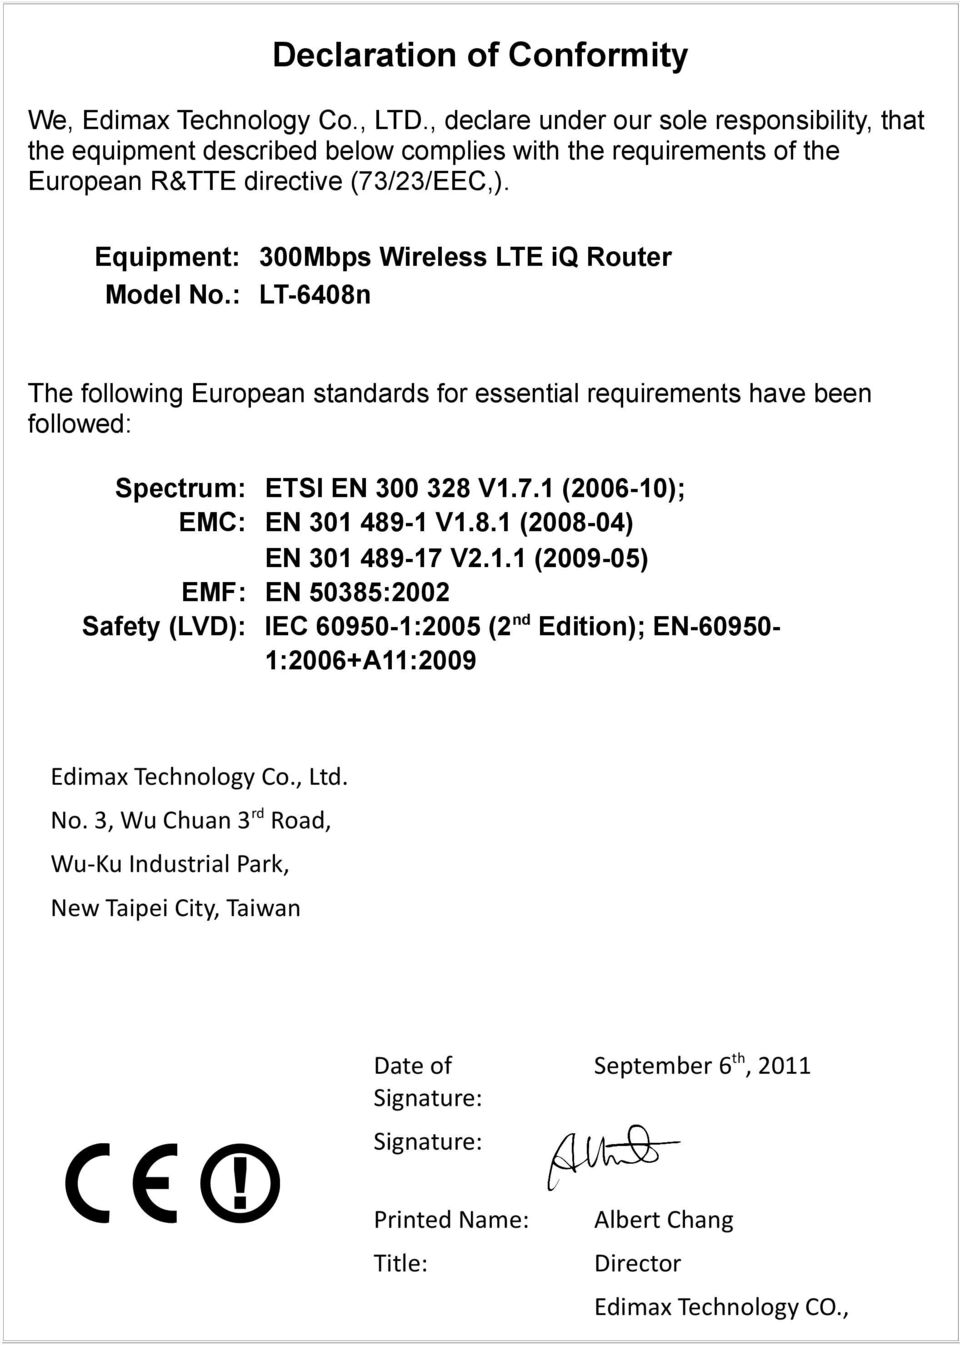 Equipment: 300Mbps Wireless LTE iq Router Model No.: LT-6408n The following European standards for essential requirements have been followed: Spectrum: ETSI EN 300 328 V1.7.